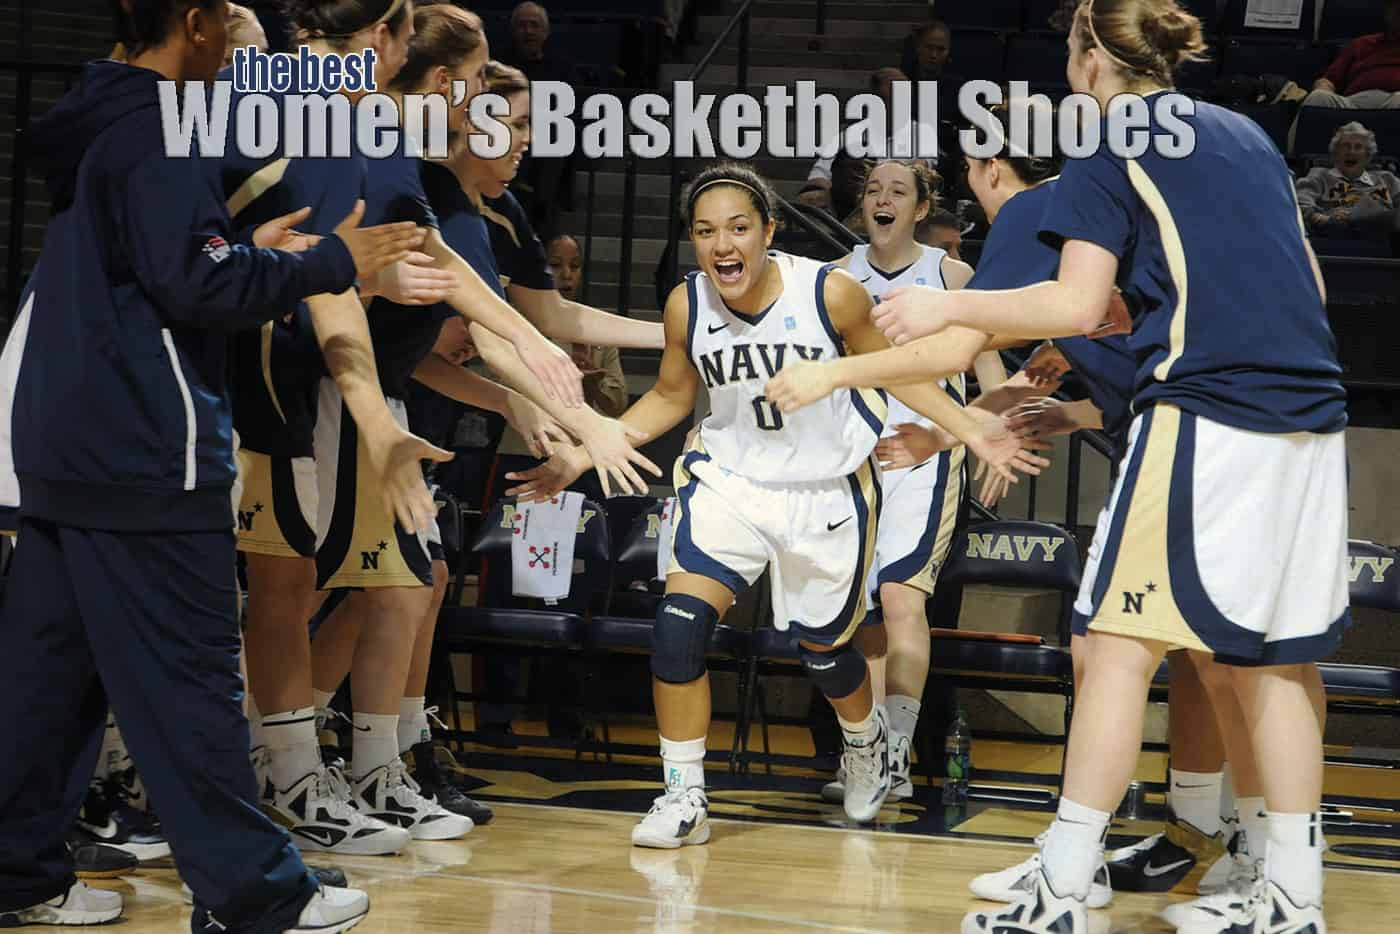 Best Womens Basketball Shoes 2019 The 10 Best Women's Basketball Shoes for 2019   Comfort & Speed